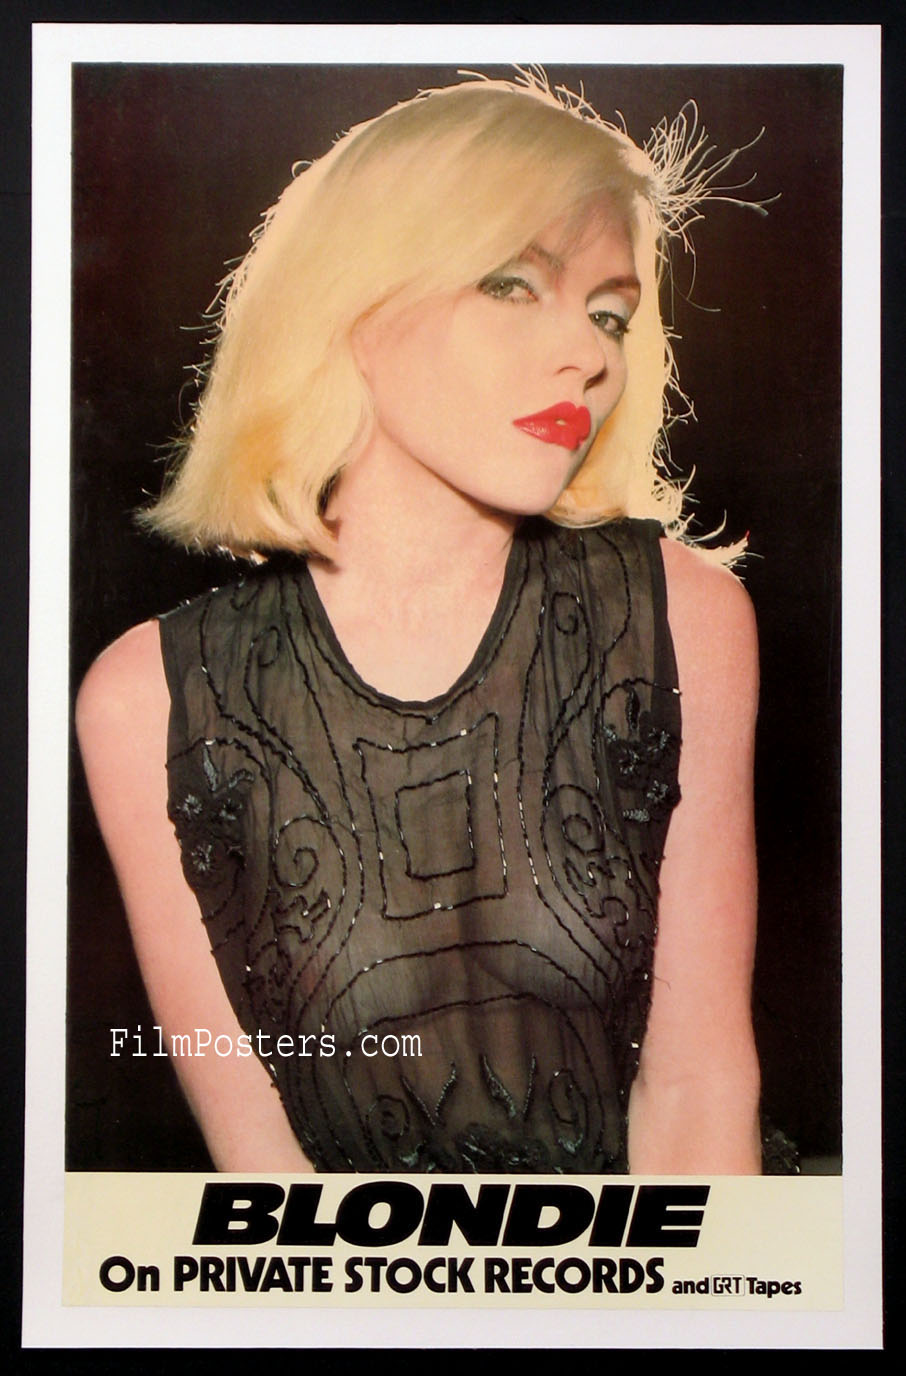 BLONDIE ON PRIVATE STOCK RECORDS PROMOTIONAL POSTER @ FilmPosters.com